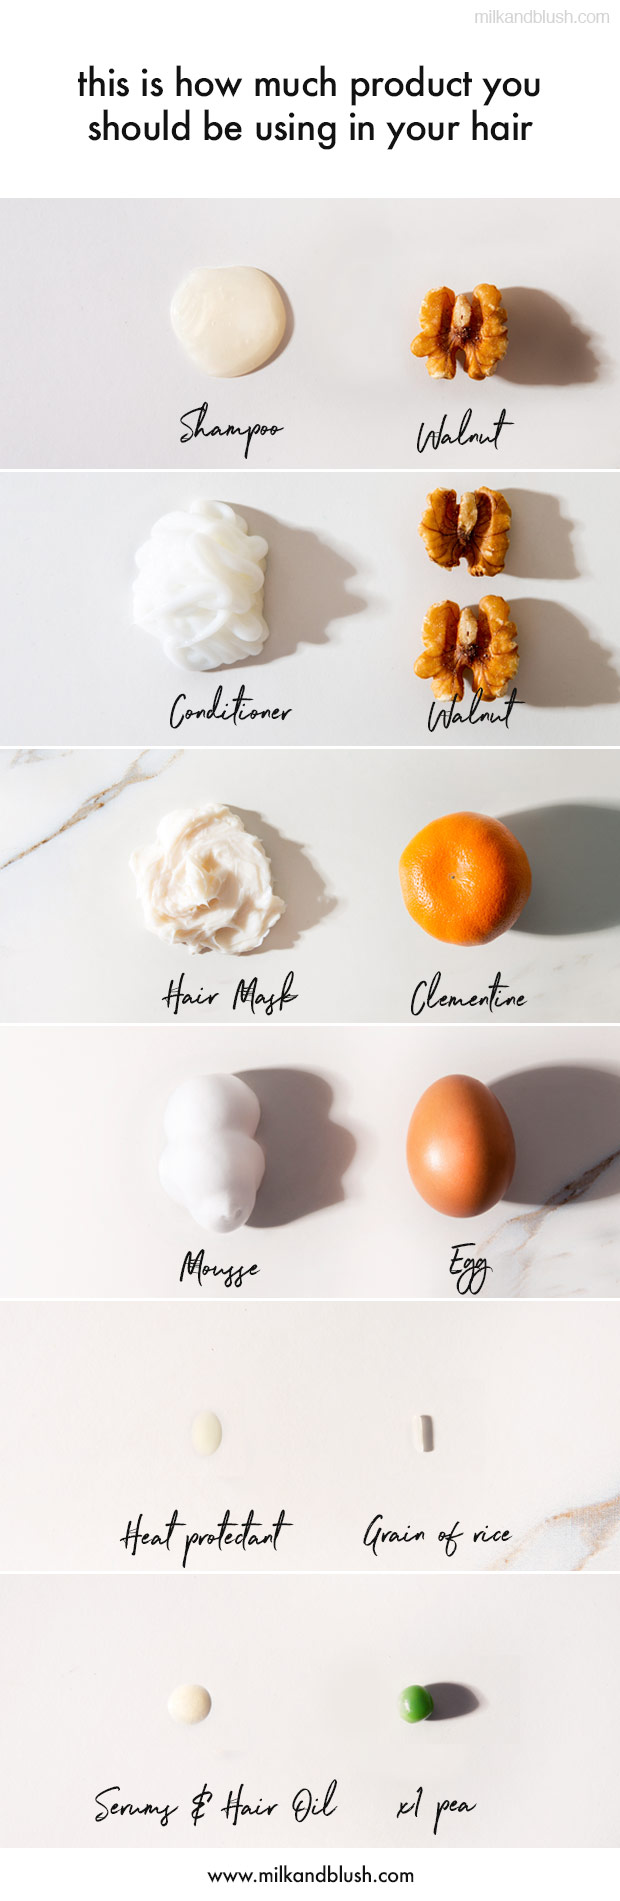 conditioner-milk-and-blush-product-images